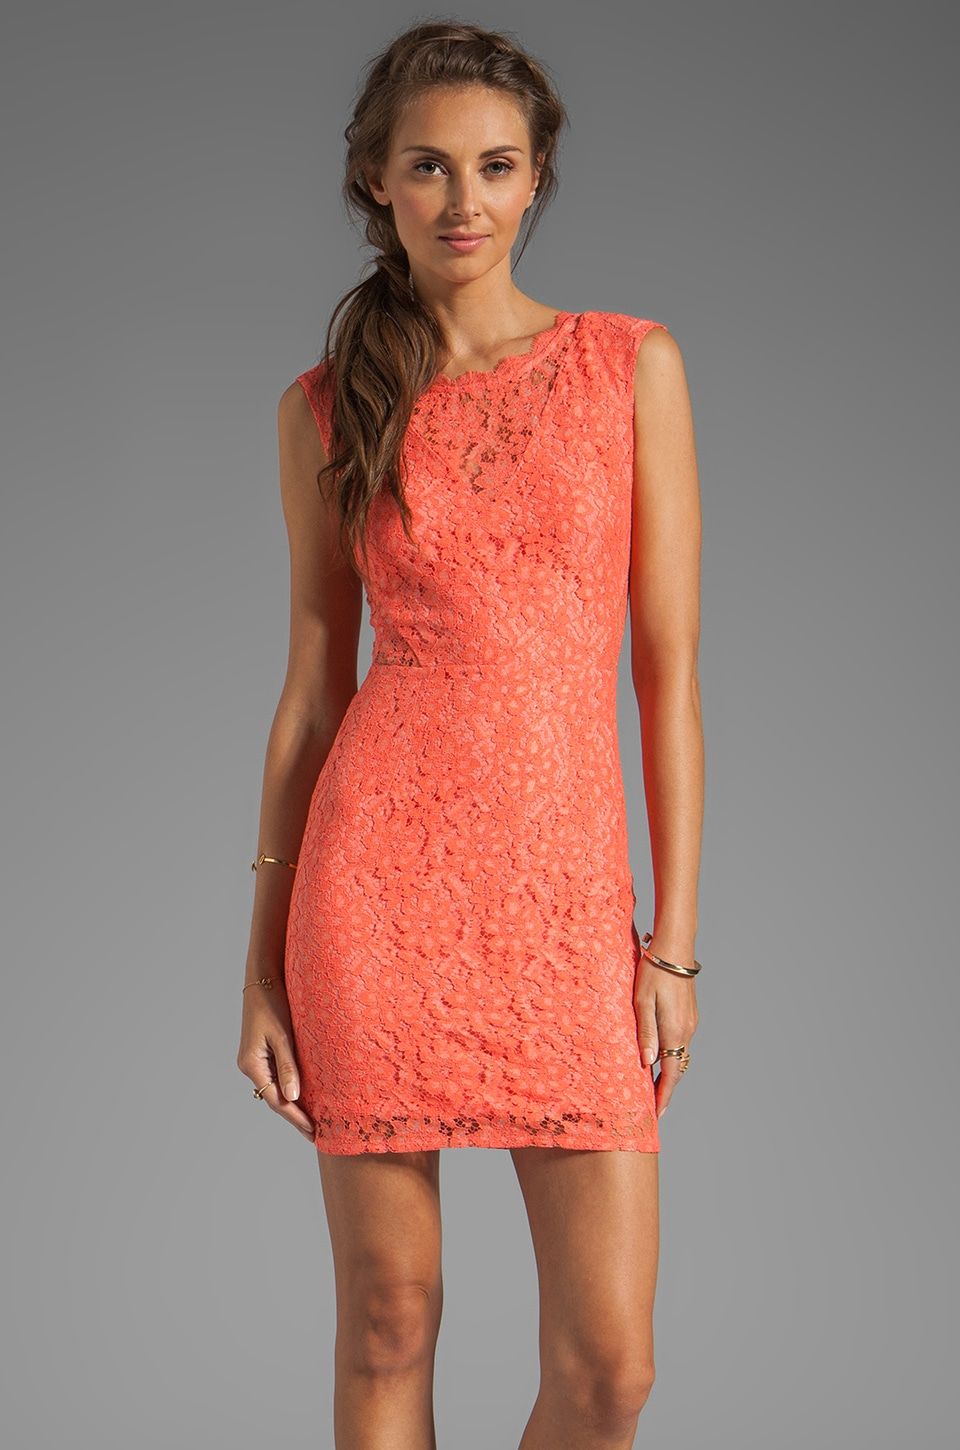 Dolce Vita Trouble Neon Lace Dress in Melon